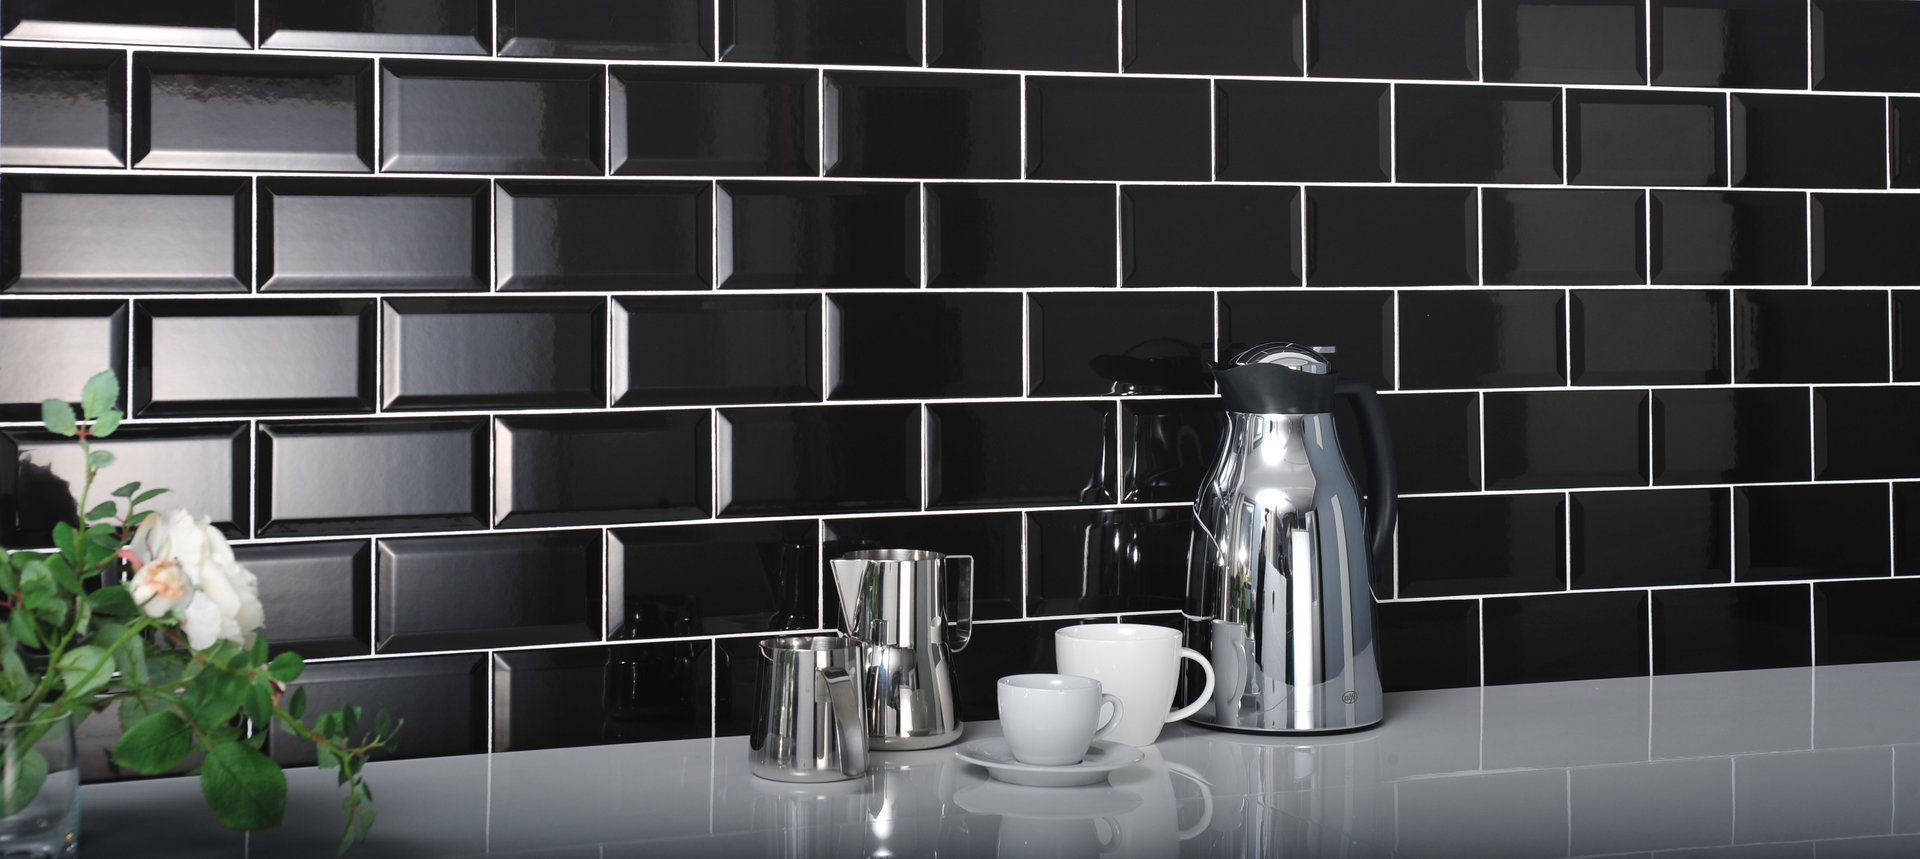 Kitchen Wall Tiles With Dark Cabinets